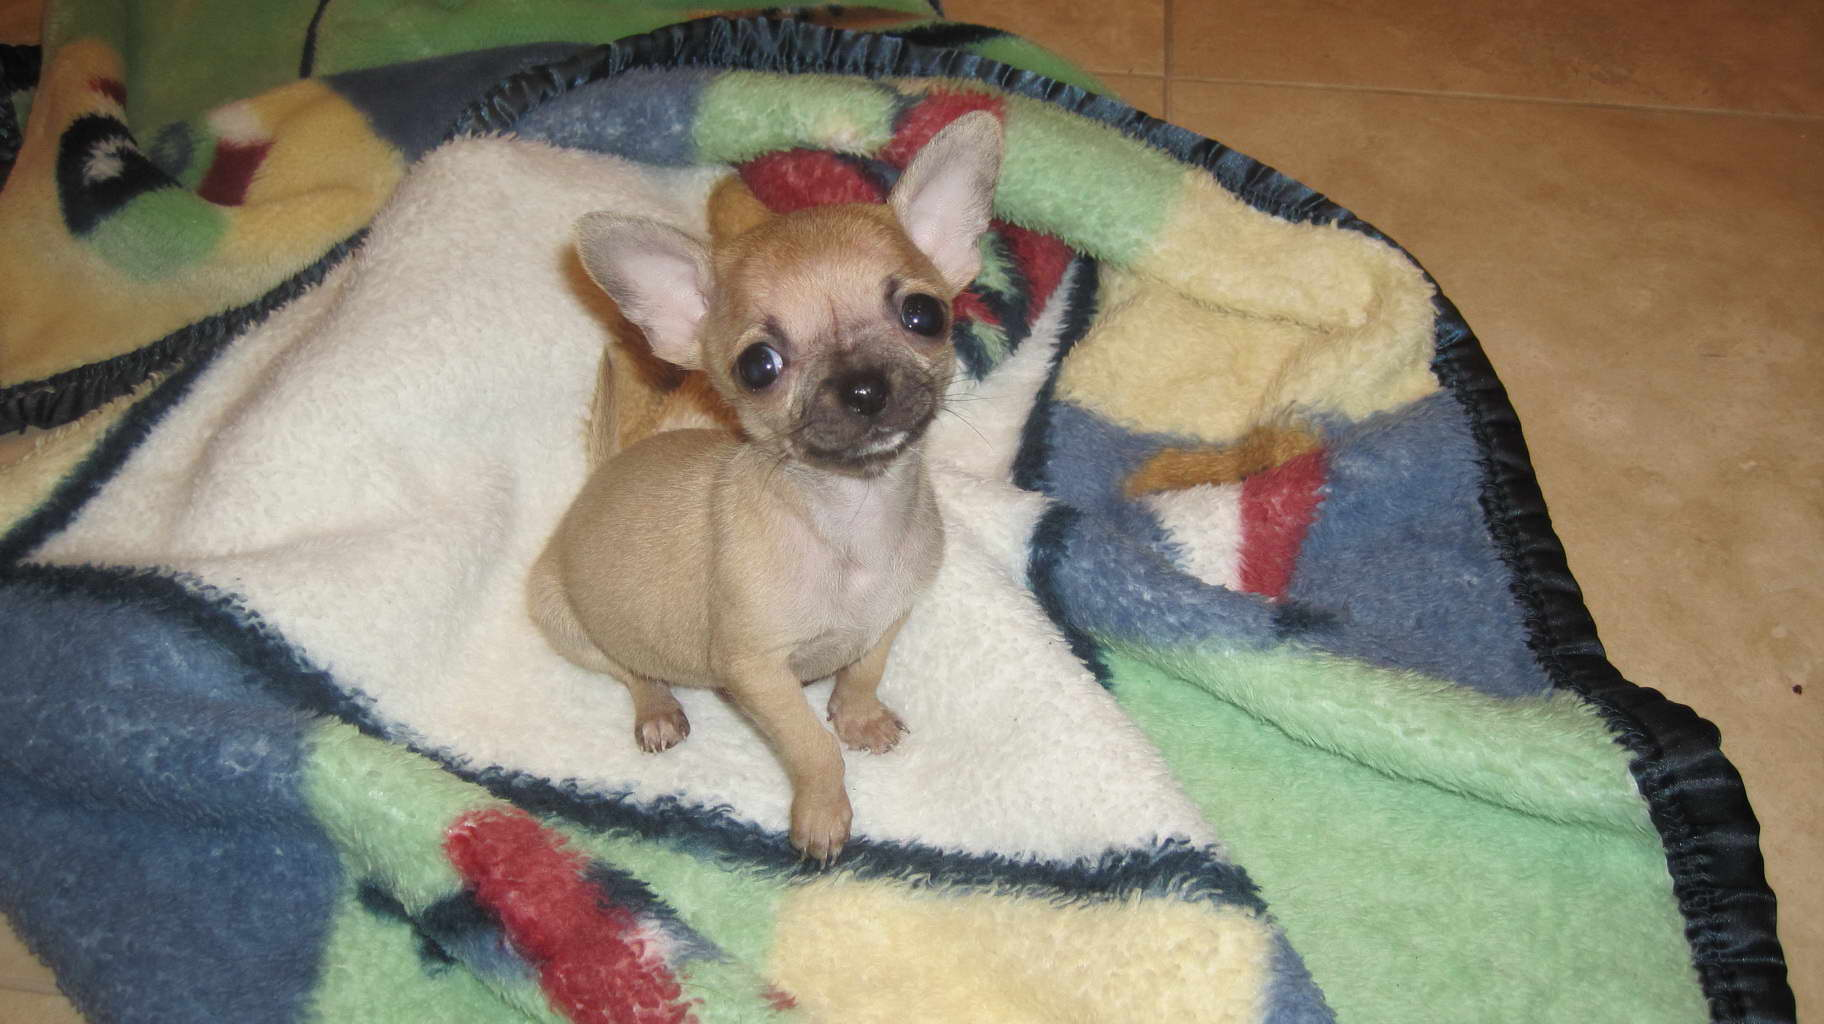 Chihuahua Puppies For Sale In Knoxville Tn   PETSIDI